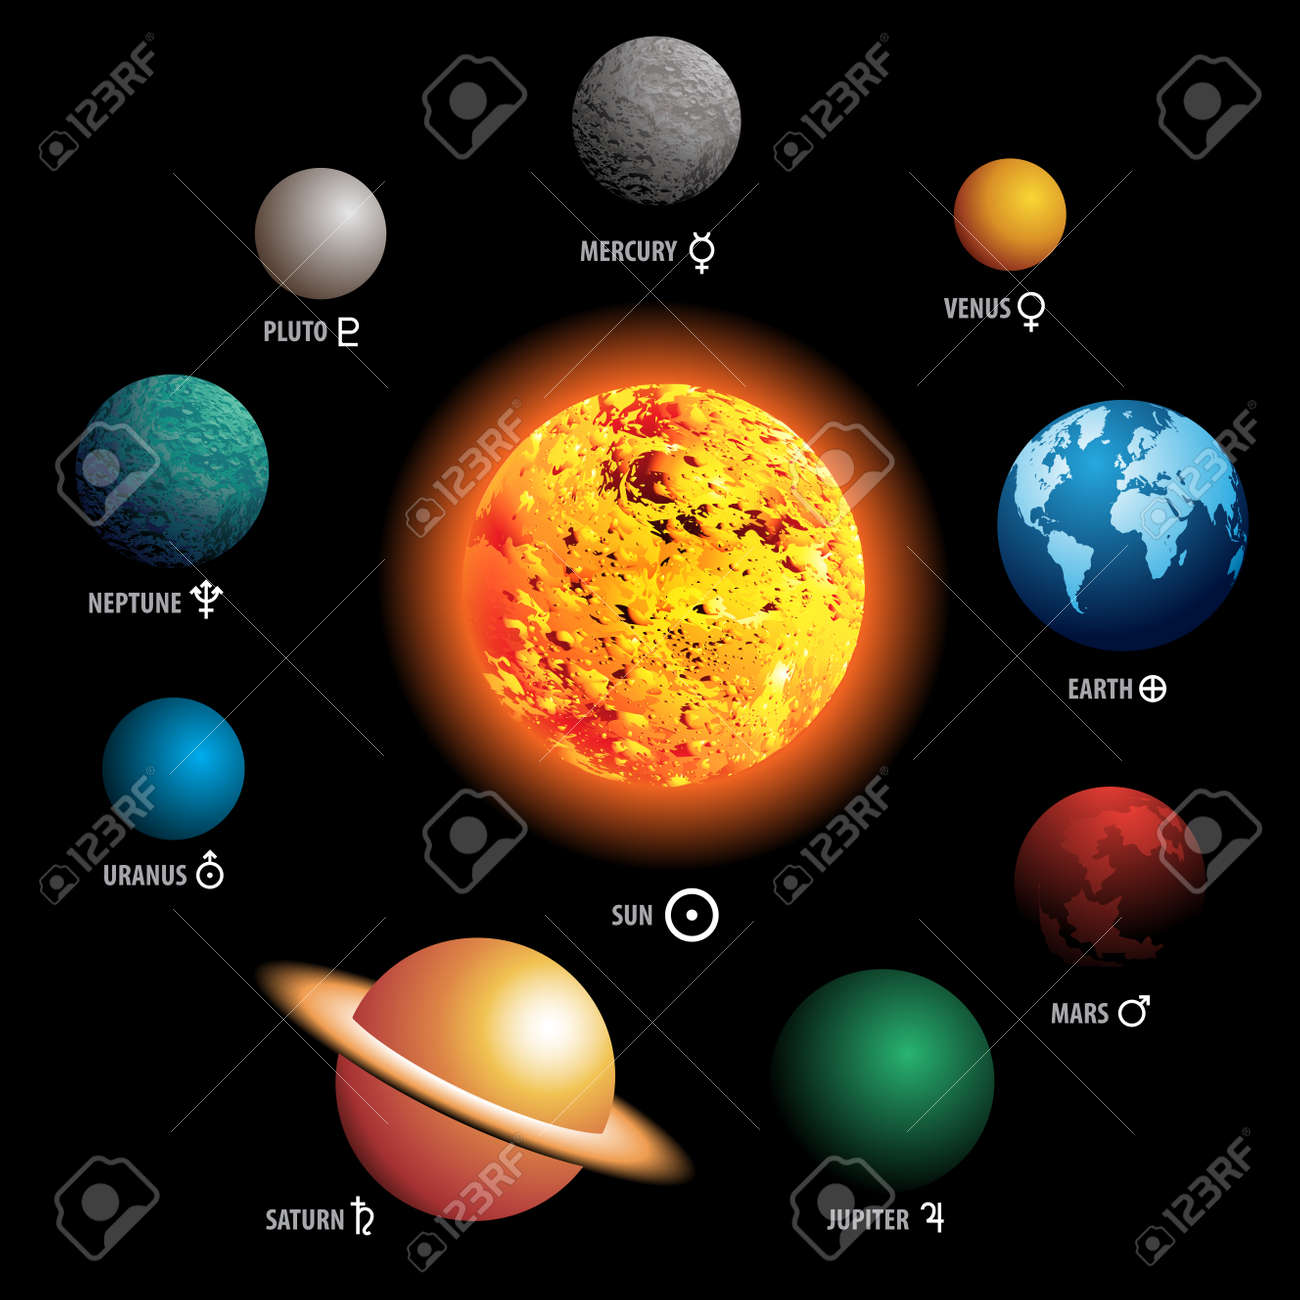 Overview Planets Solar System Exploration